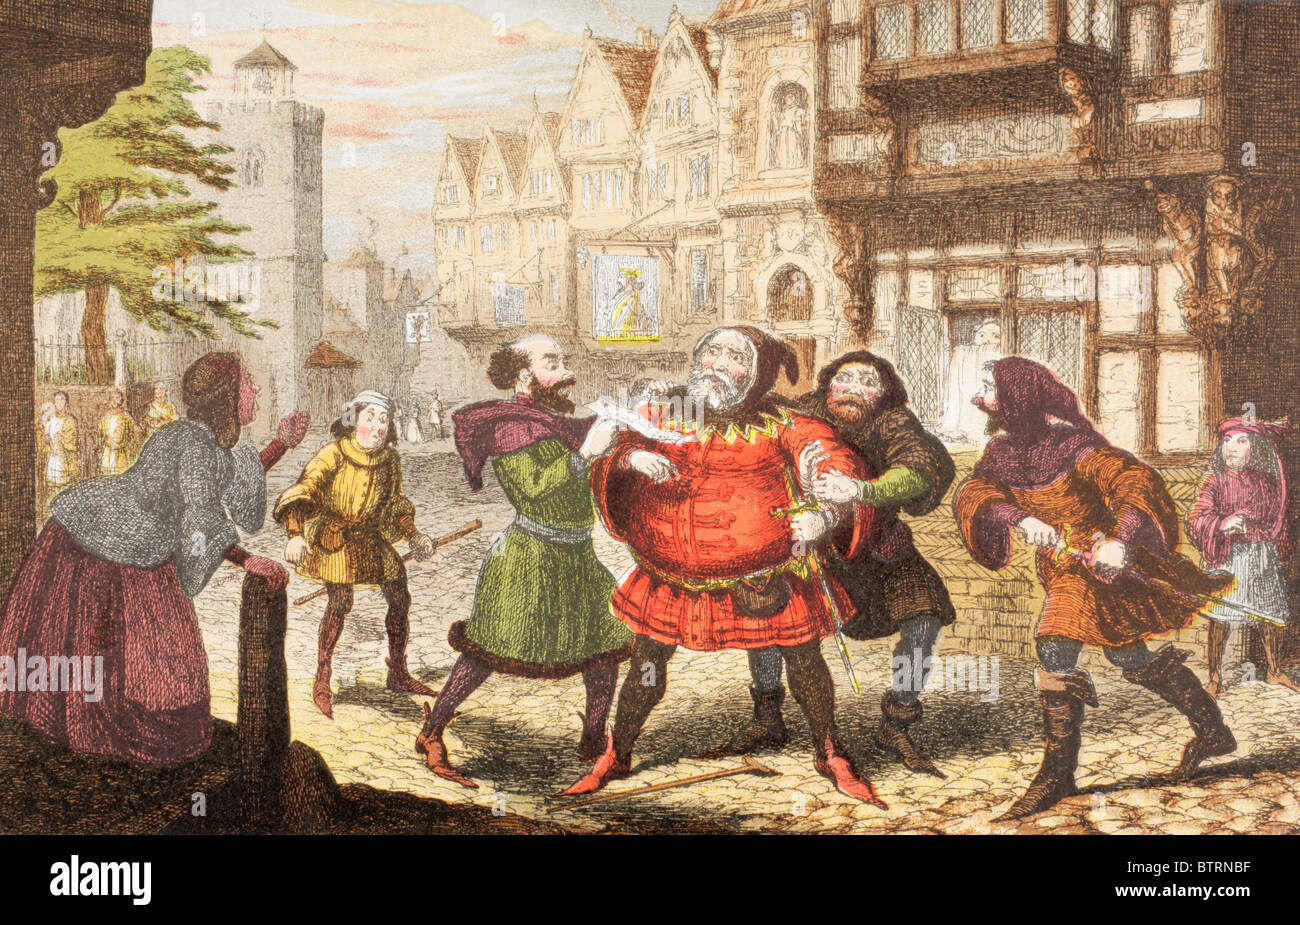 Mrs Quickly has Sir John Falstaff arrested in Henry IV, Part 2 by William Shakespeare. - Stock Image